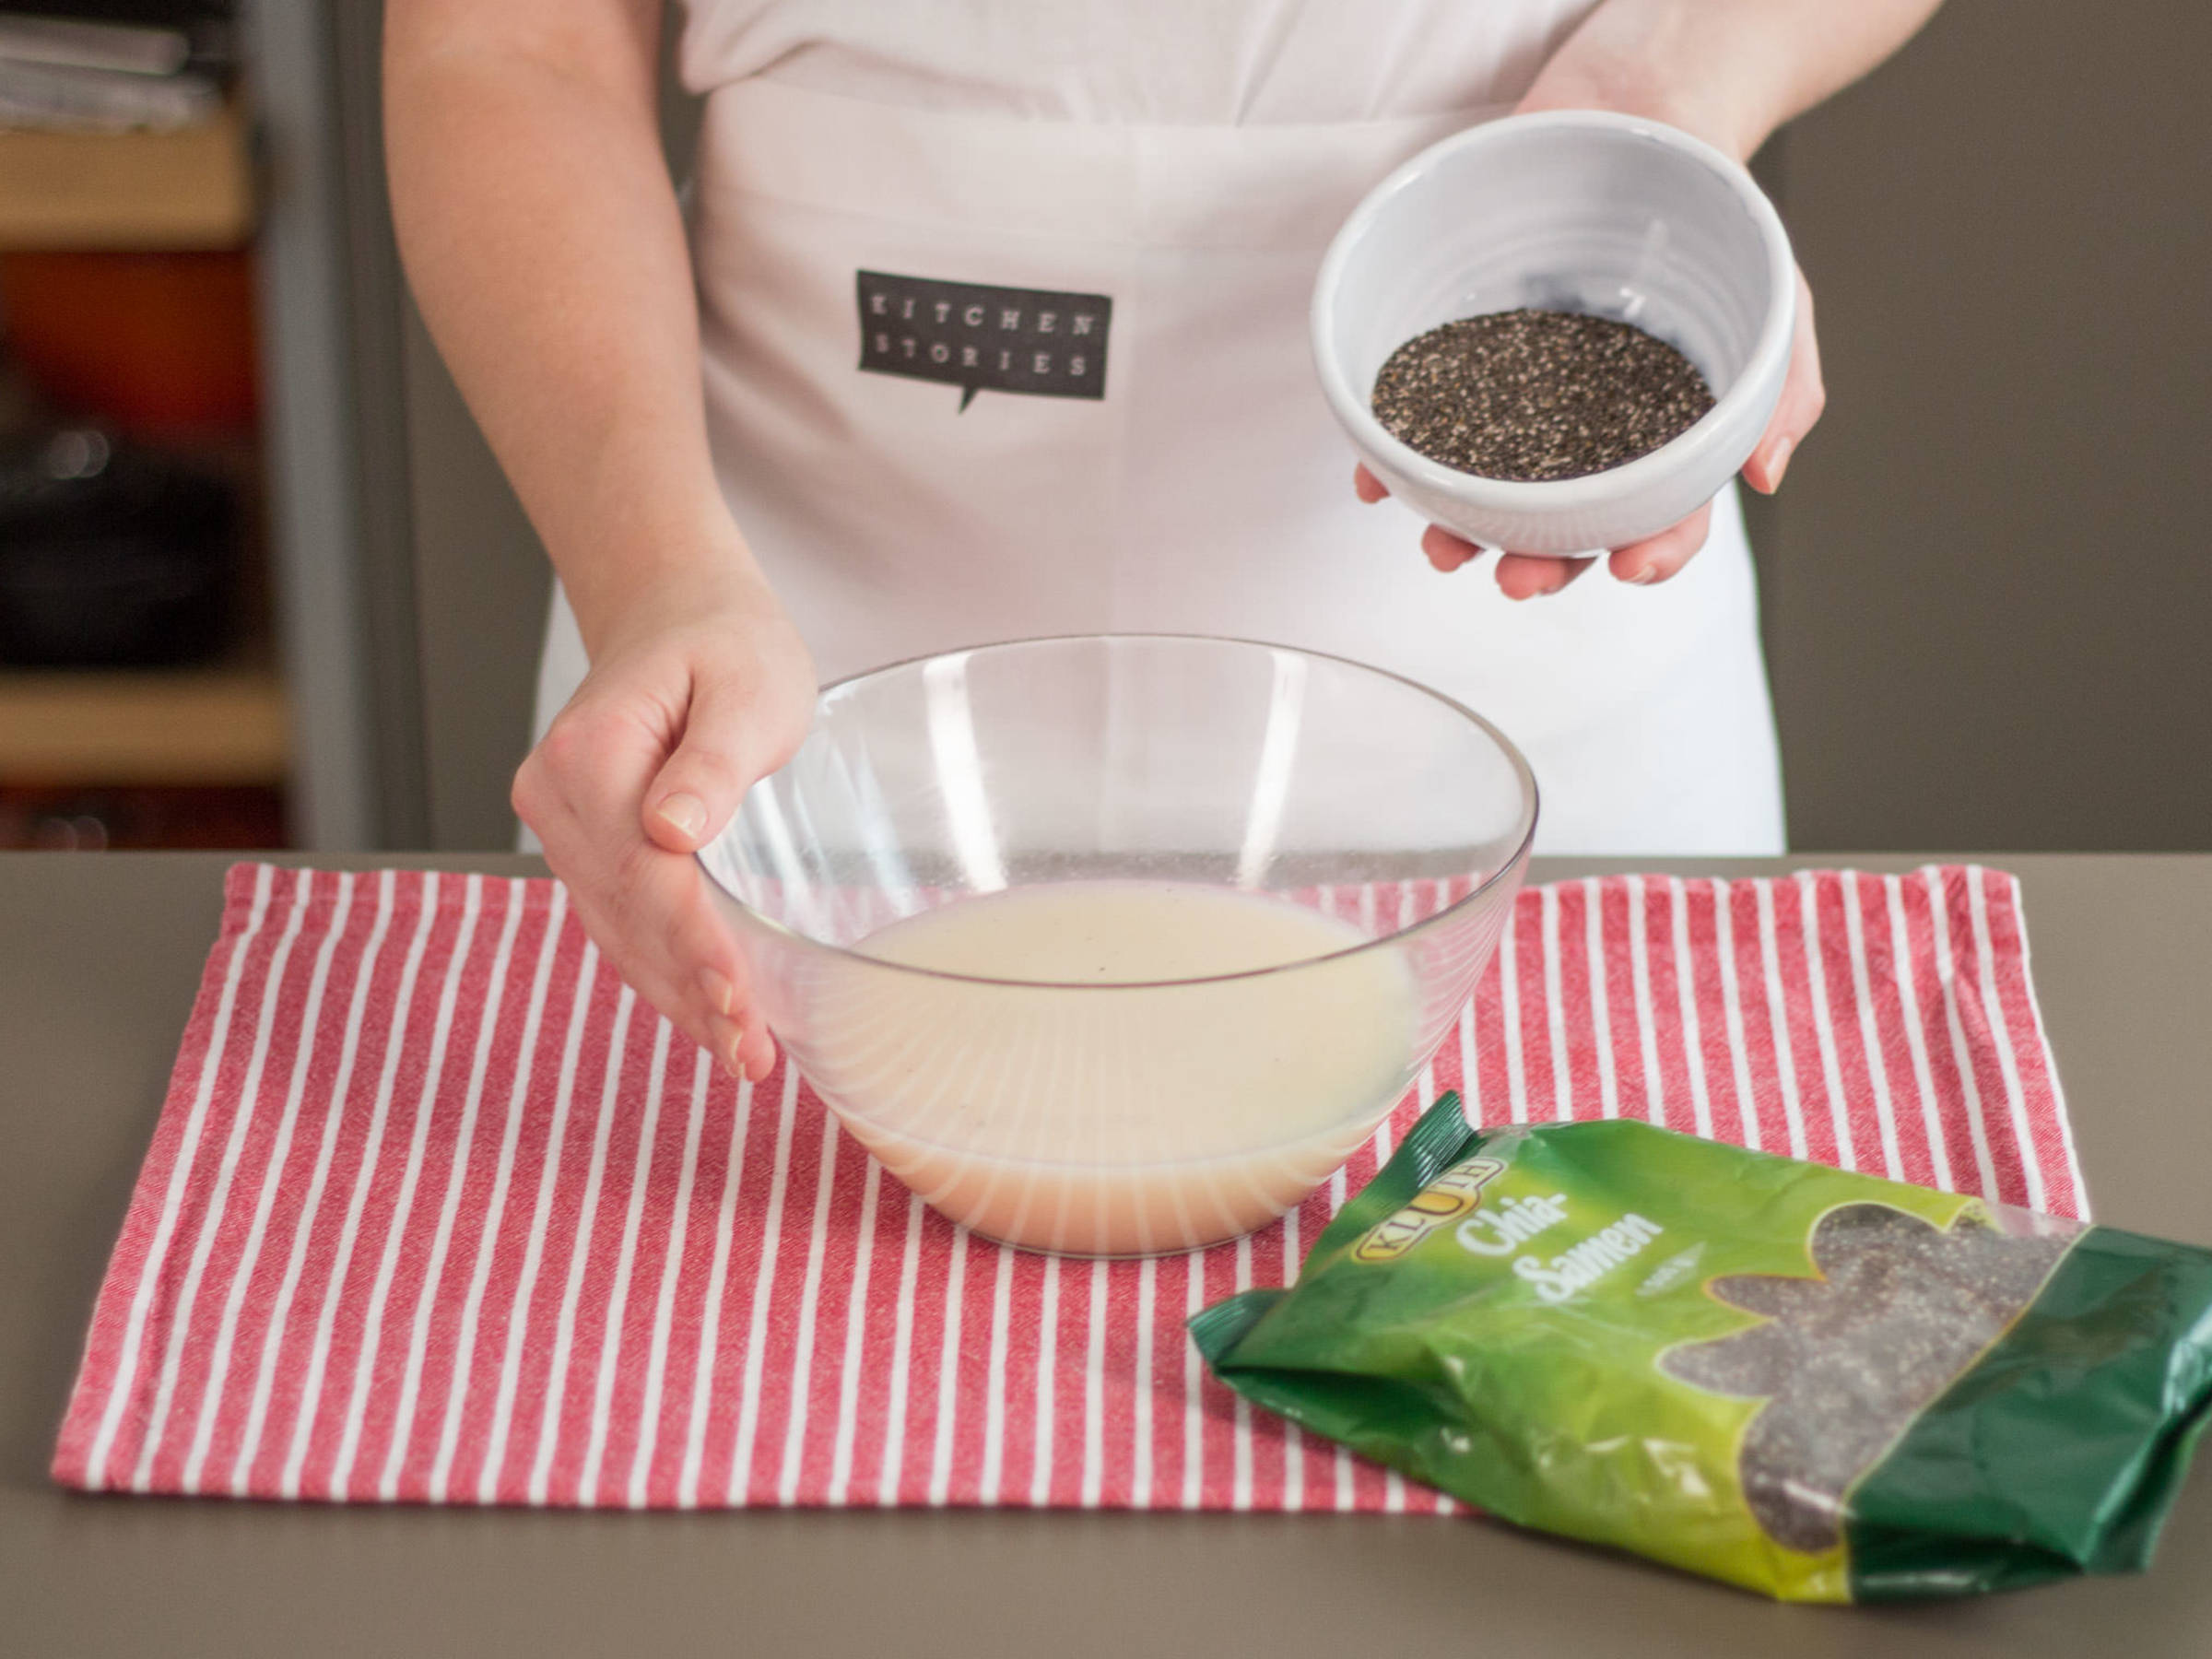 Pour rice milk into a large bowl. Discard vanilla bean pods and cinnamon stick. Add chia seeds and allow to soak for approx. 15 – 20 min.